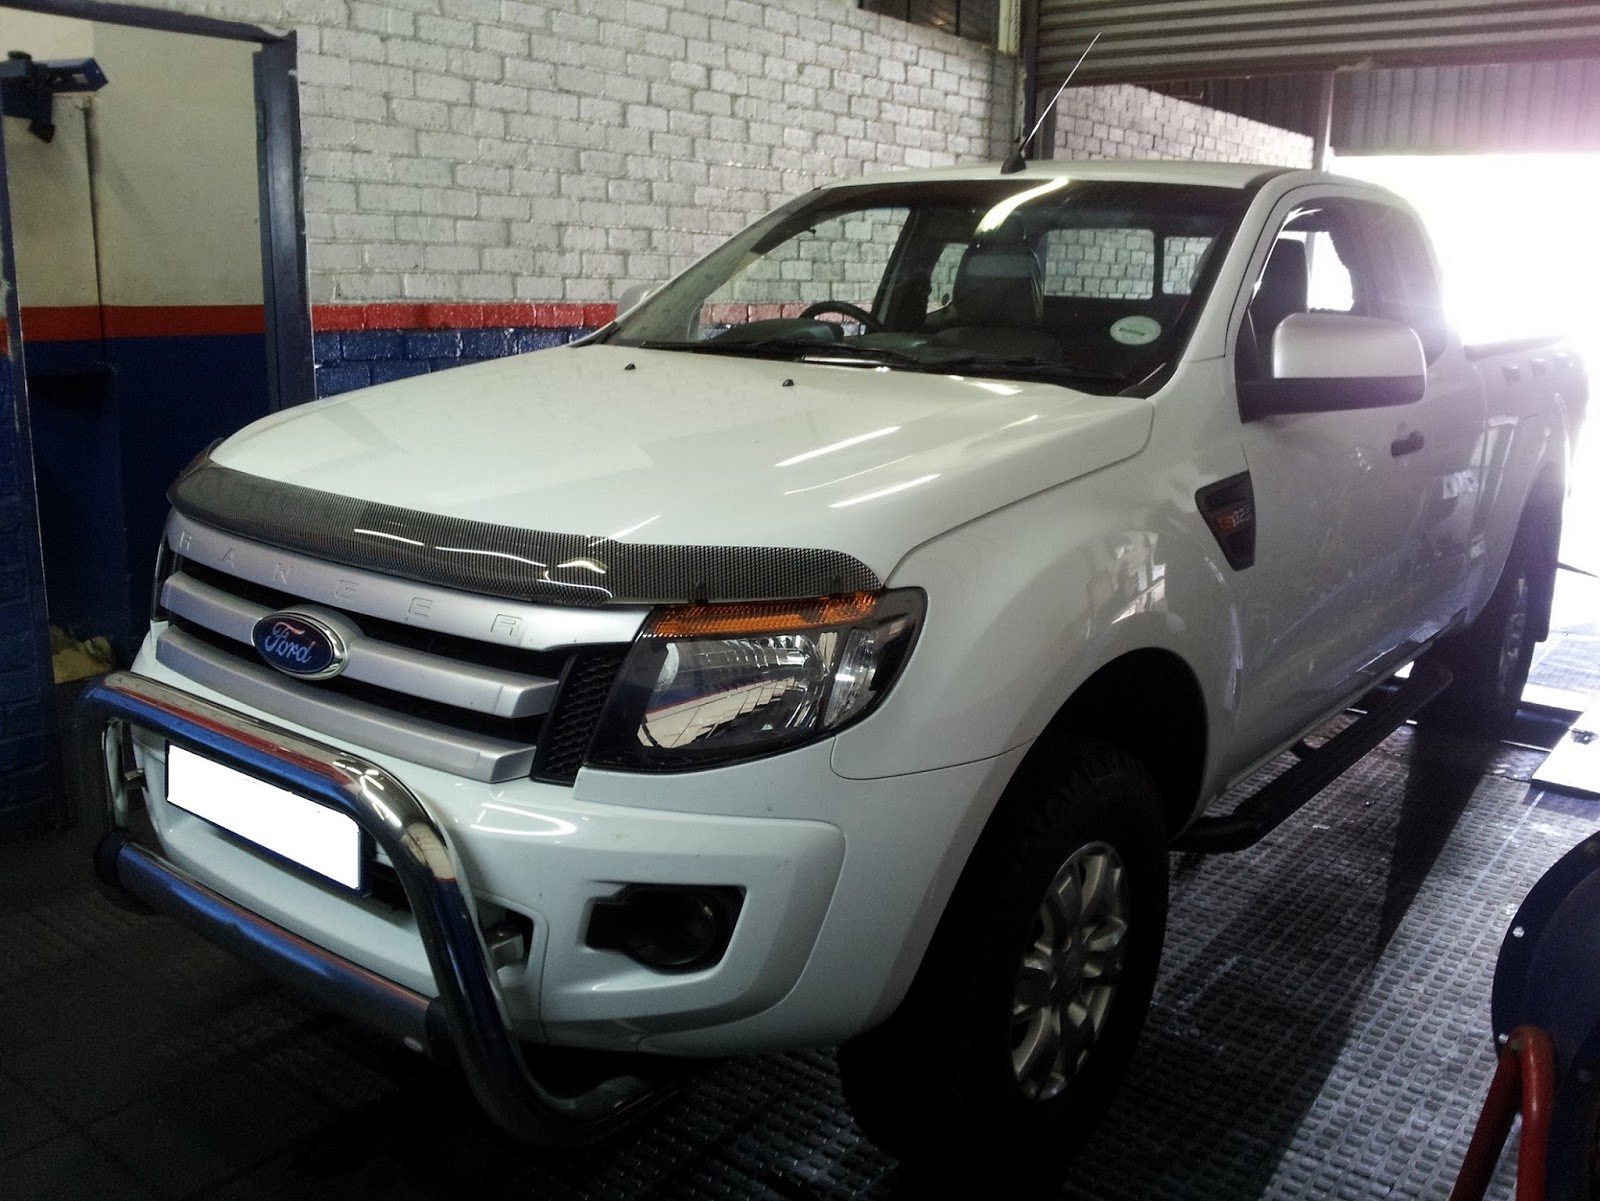 Ford Ranger 3.2 TDCI (2x4) (6 Speed Manual) Performance Chip Tuning - ECU  Remapping (+48kw & 145nm)